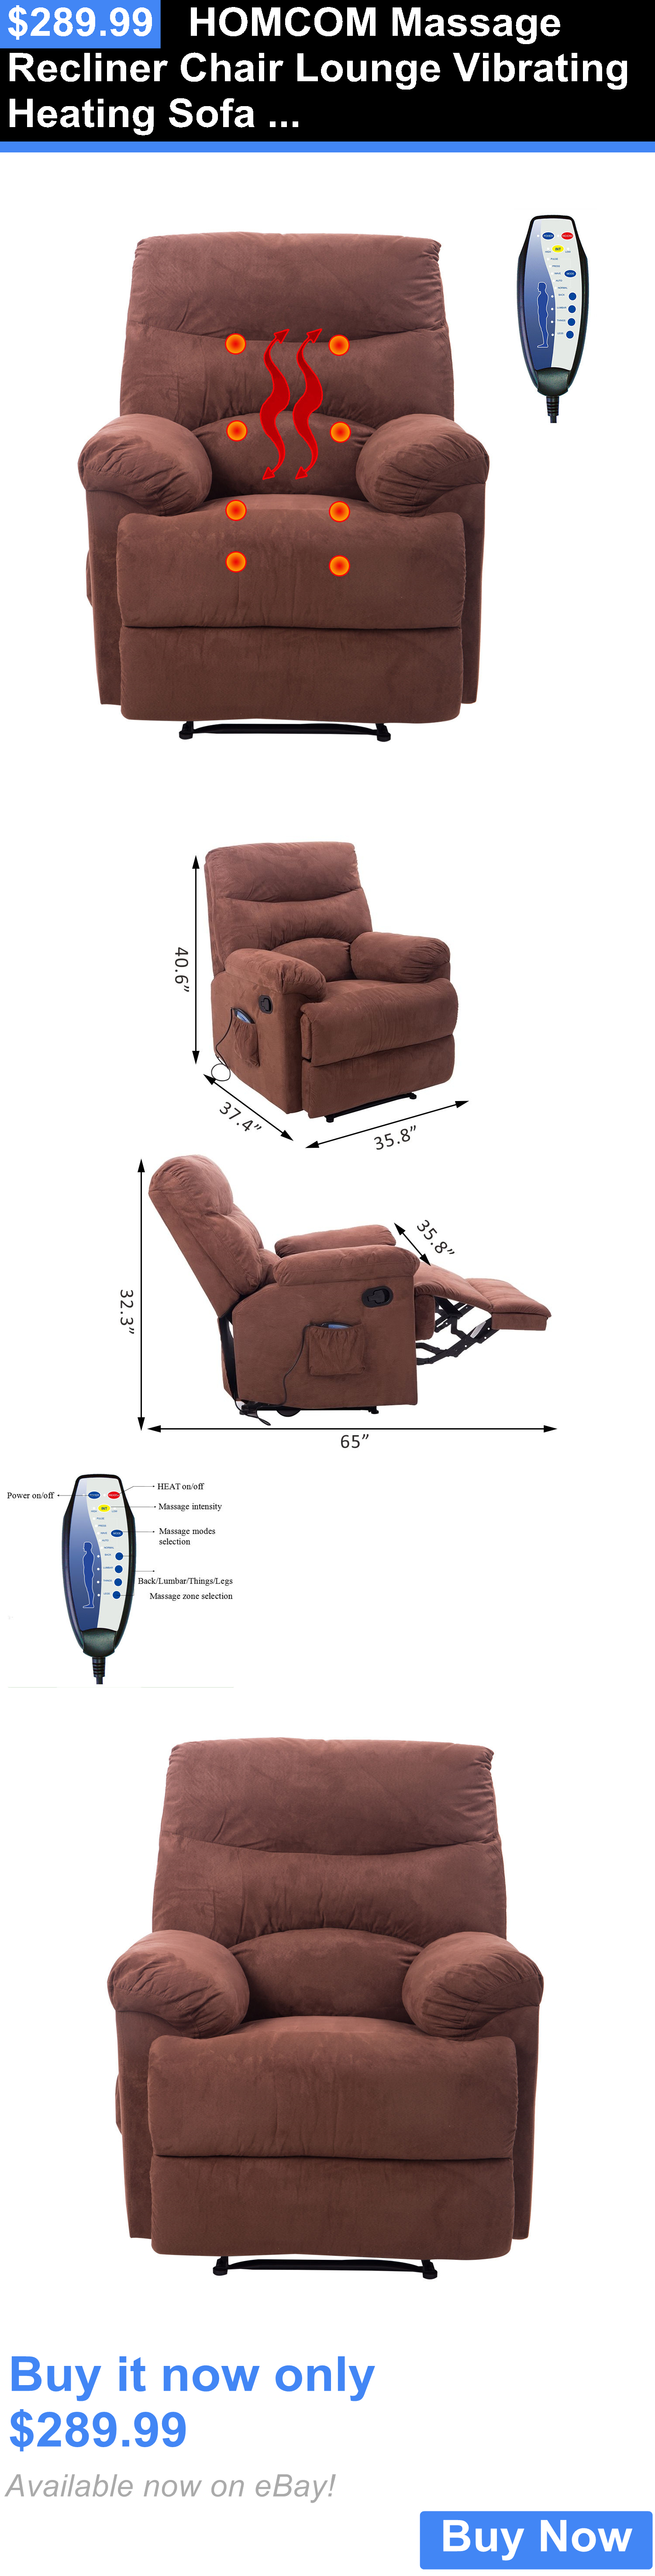 Electric Massage Chairs: Homcom Massage Recliner Chair Lounge Vibrating  Heating Sofa Suede W/ Controller